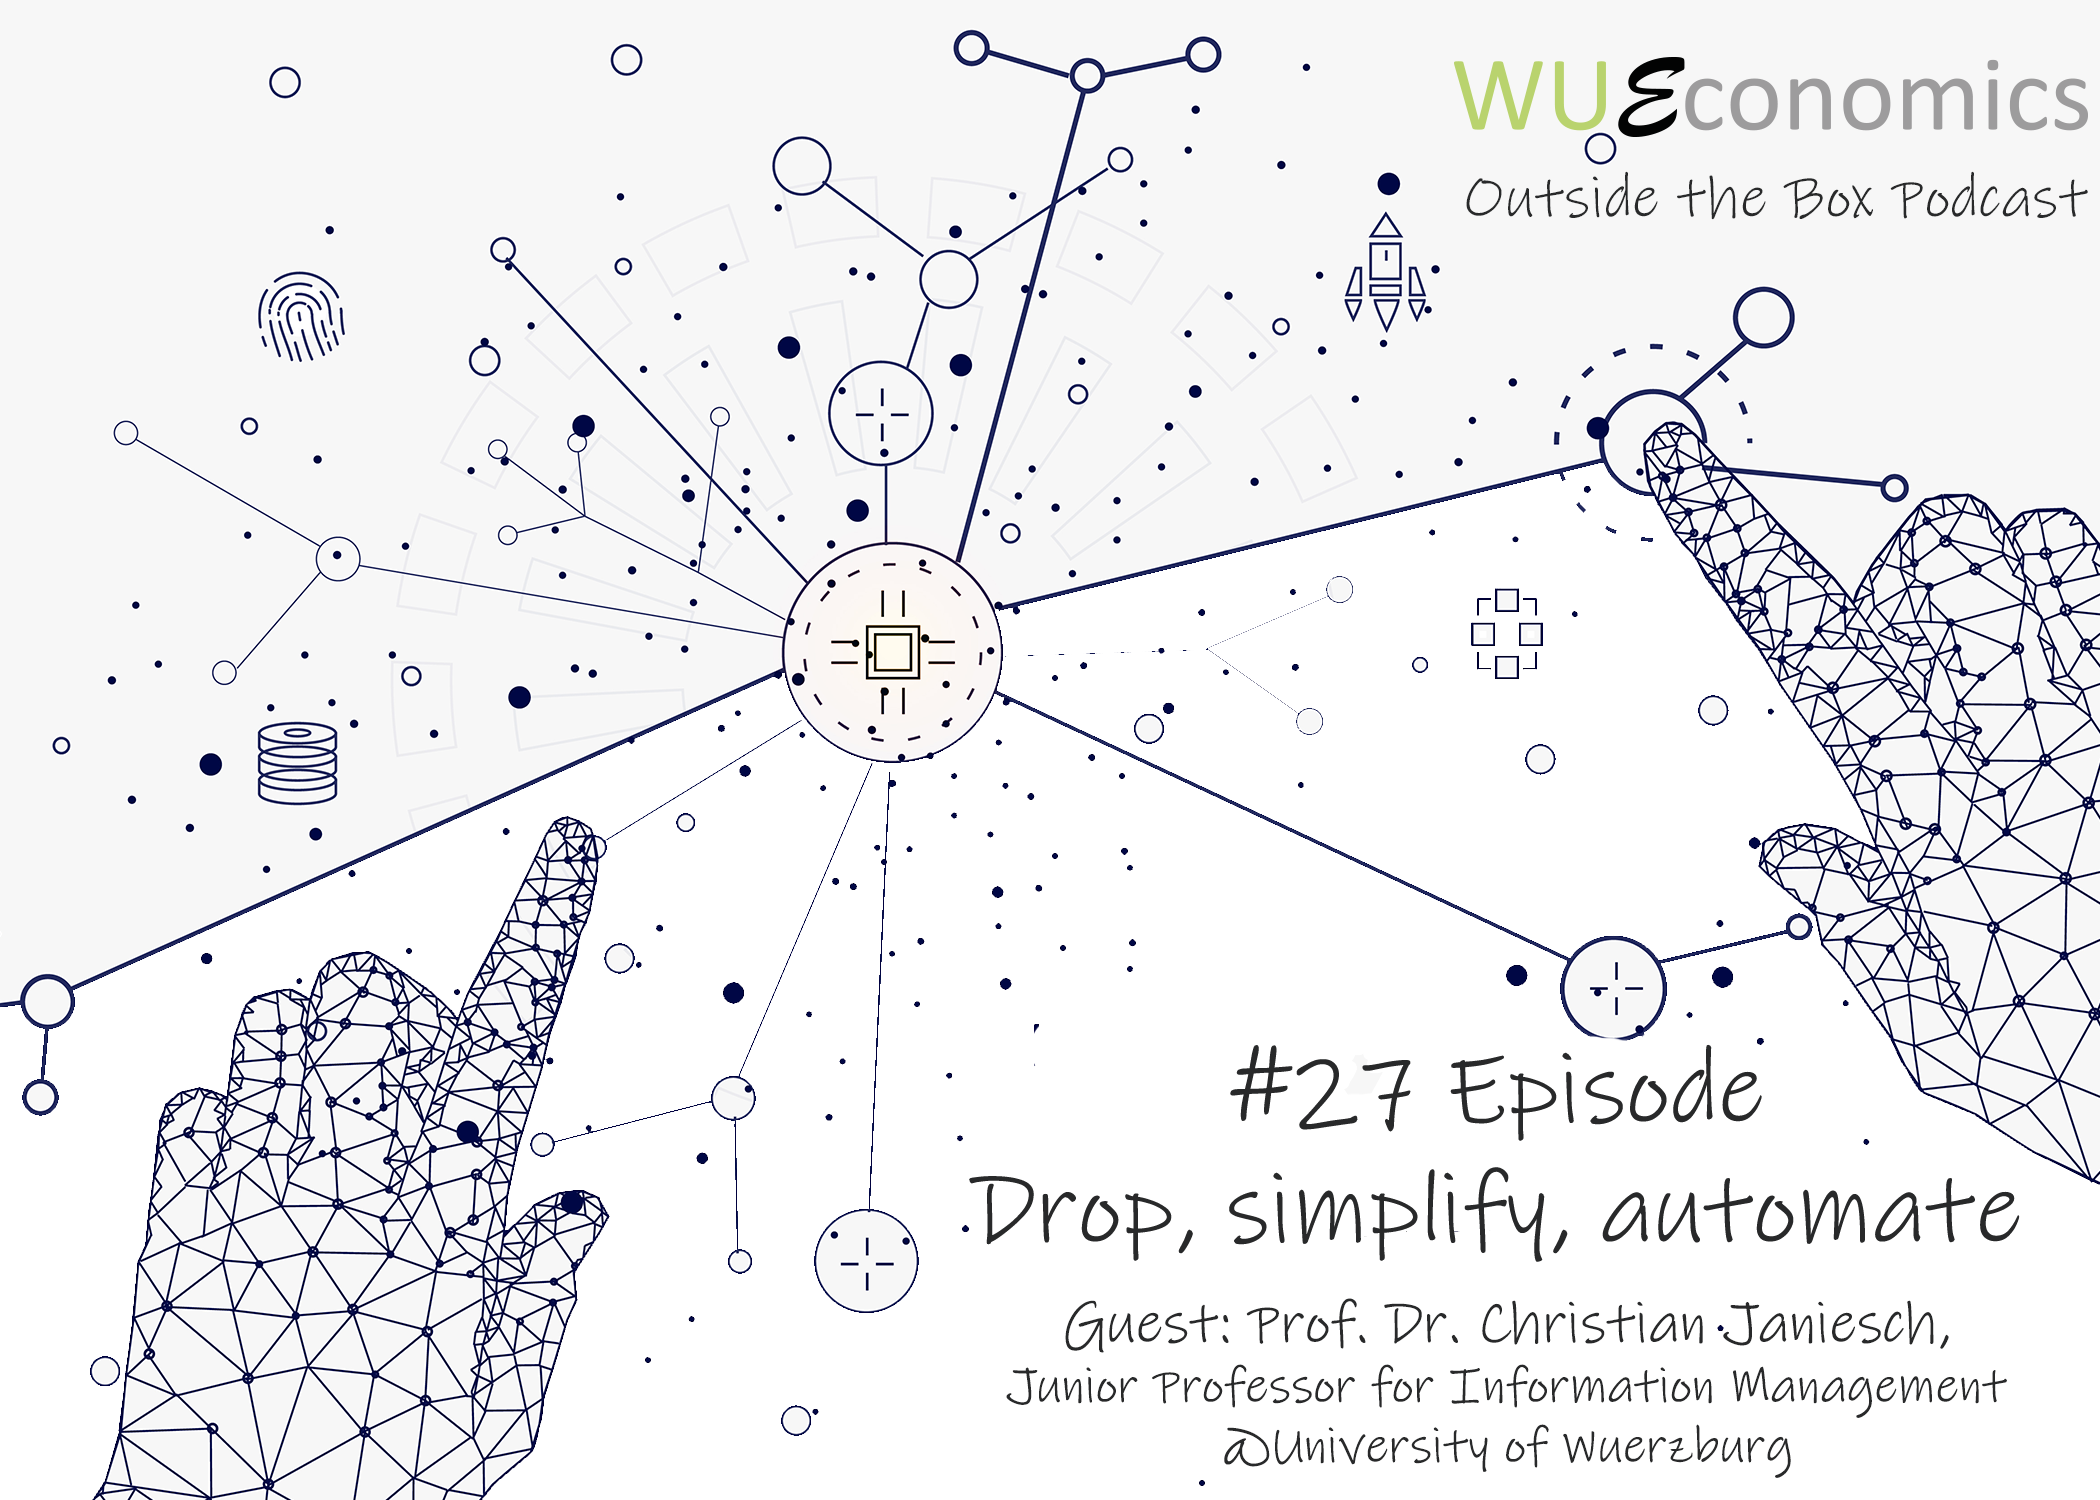 Episode 27 Drop, simplify, automate